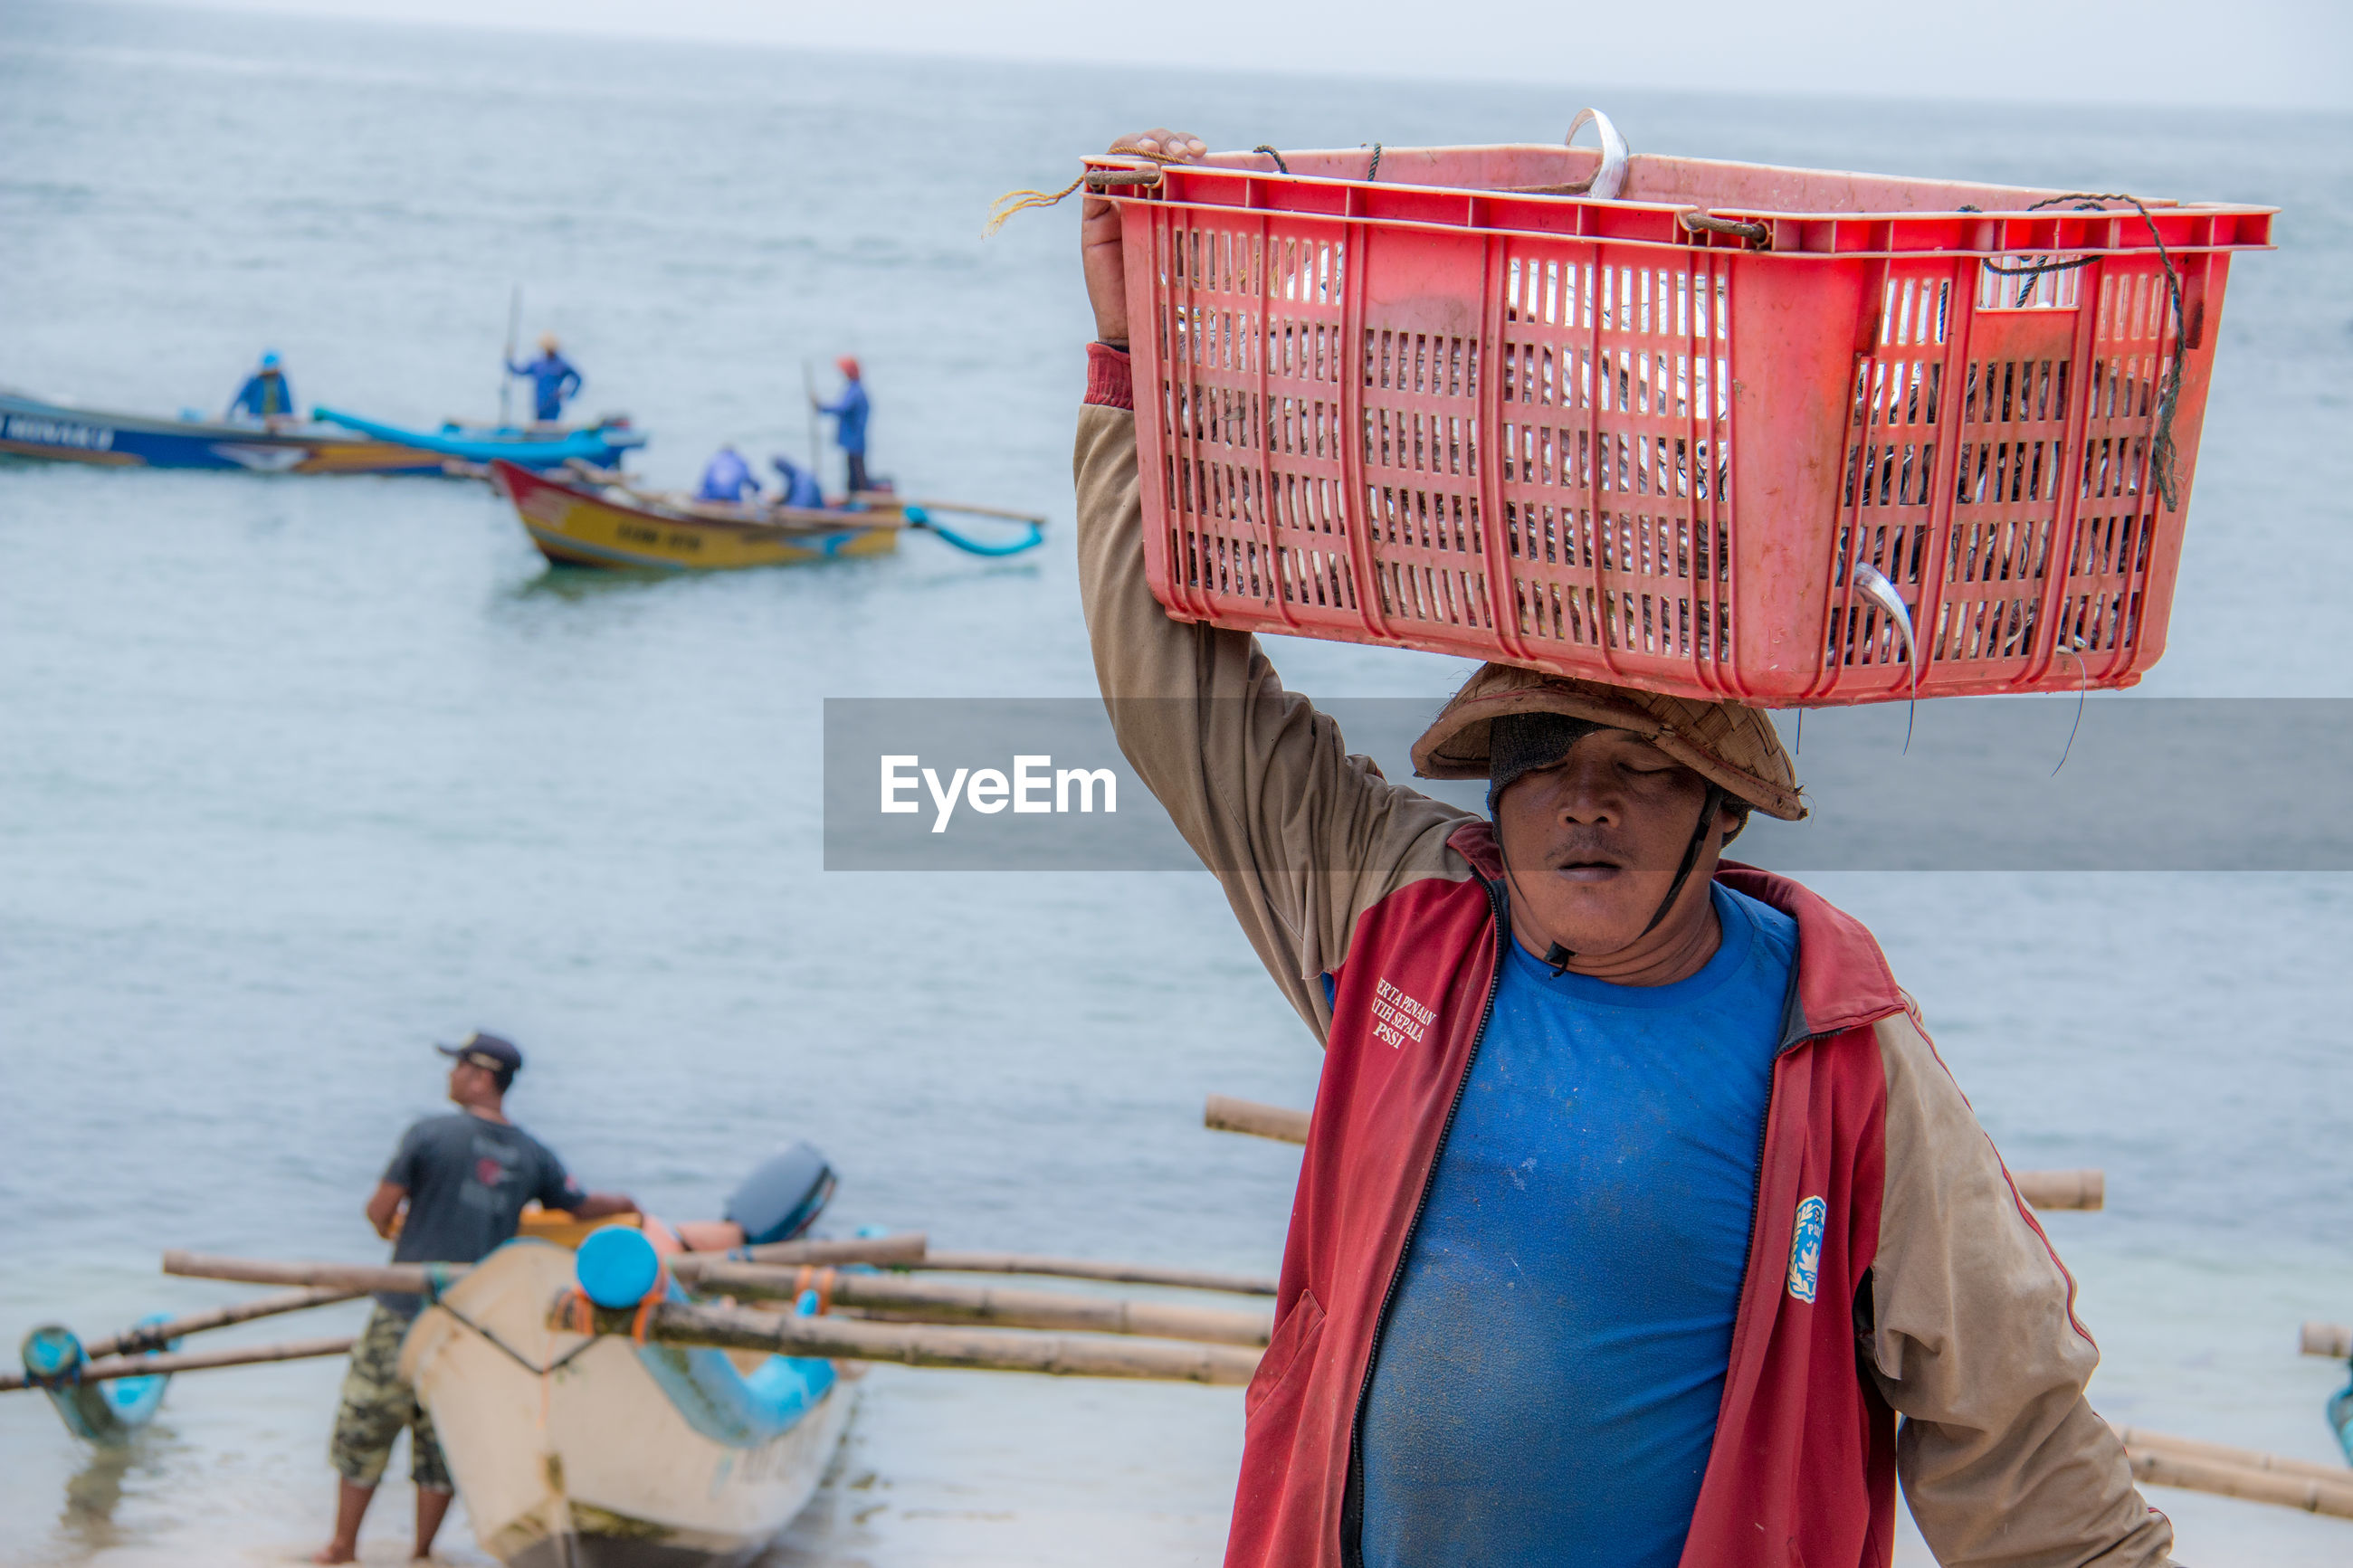 Man carrying crate while walking against sea